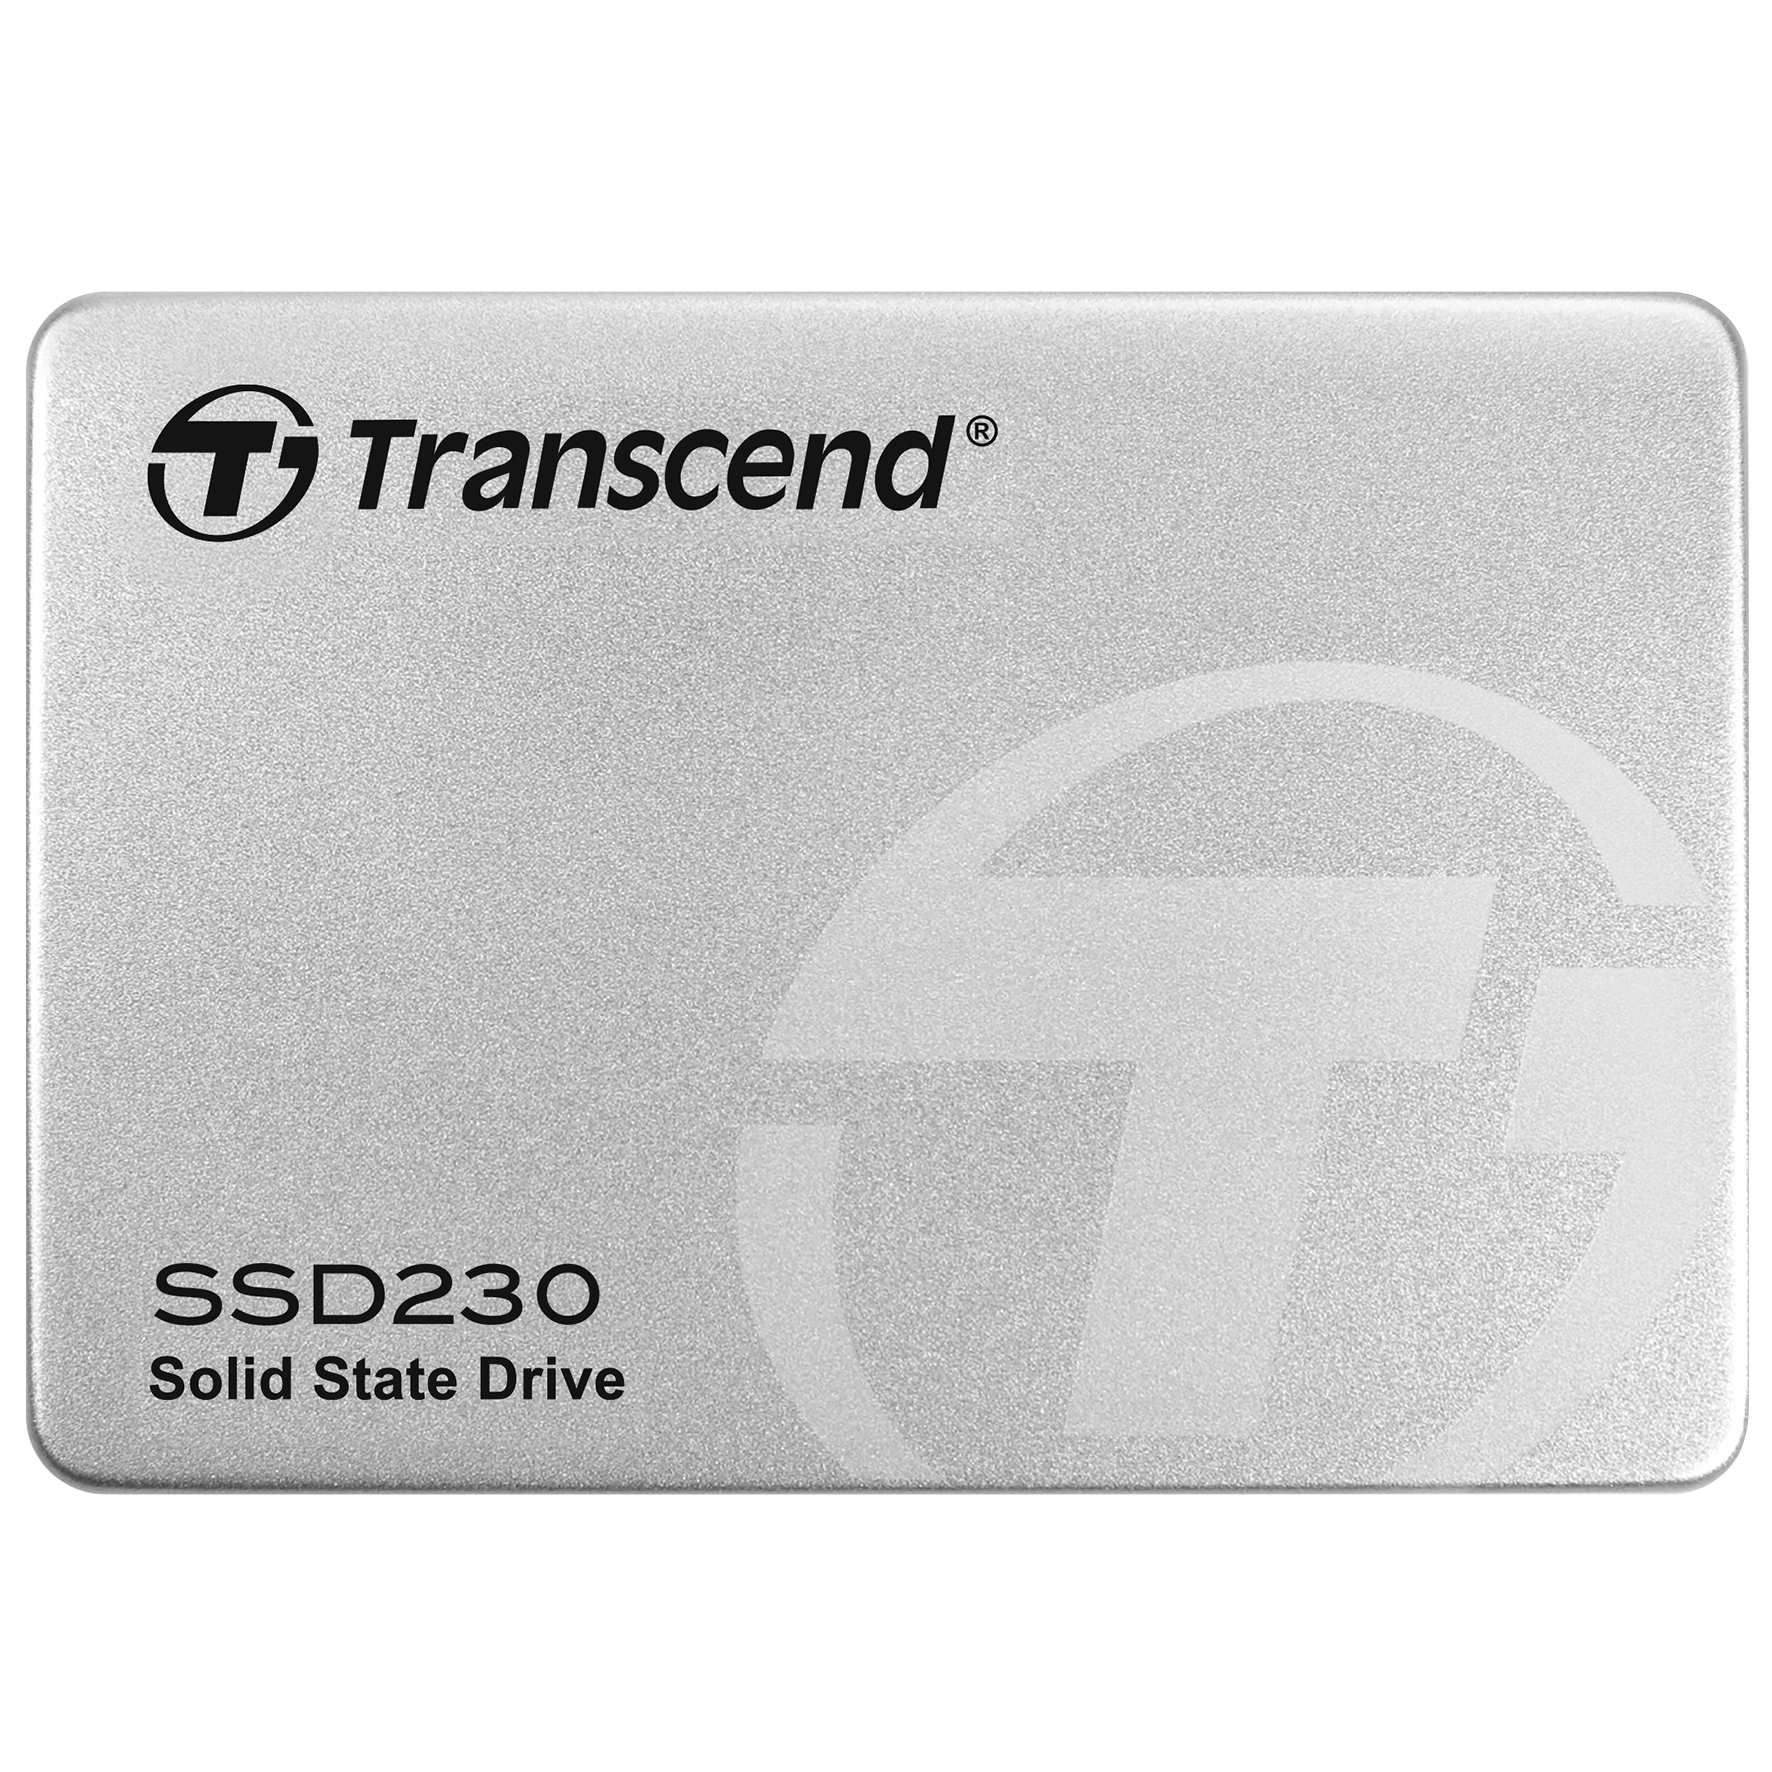 SSD230 SATA III 6Gb/s / Transcend Information, Inc.